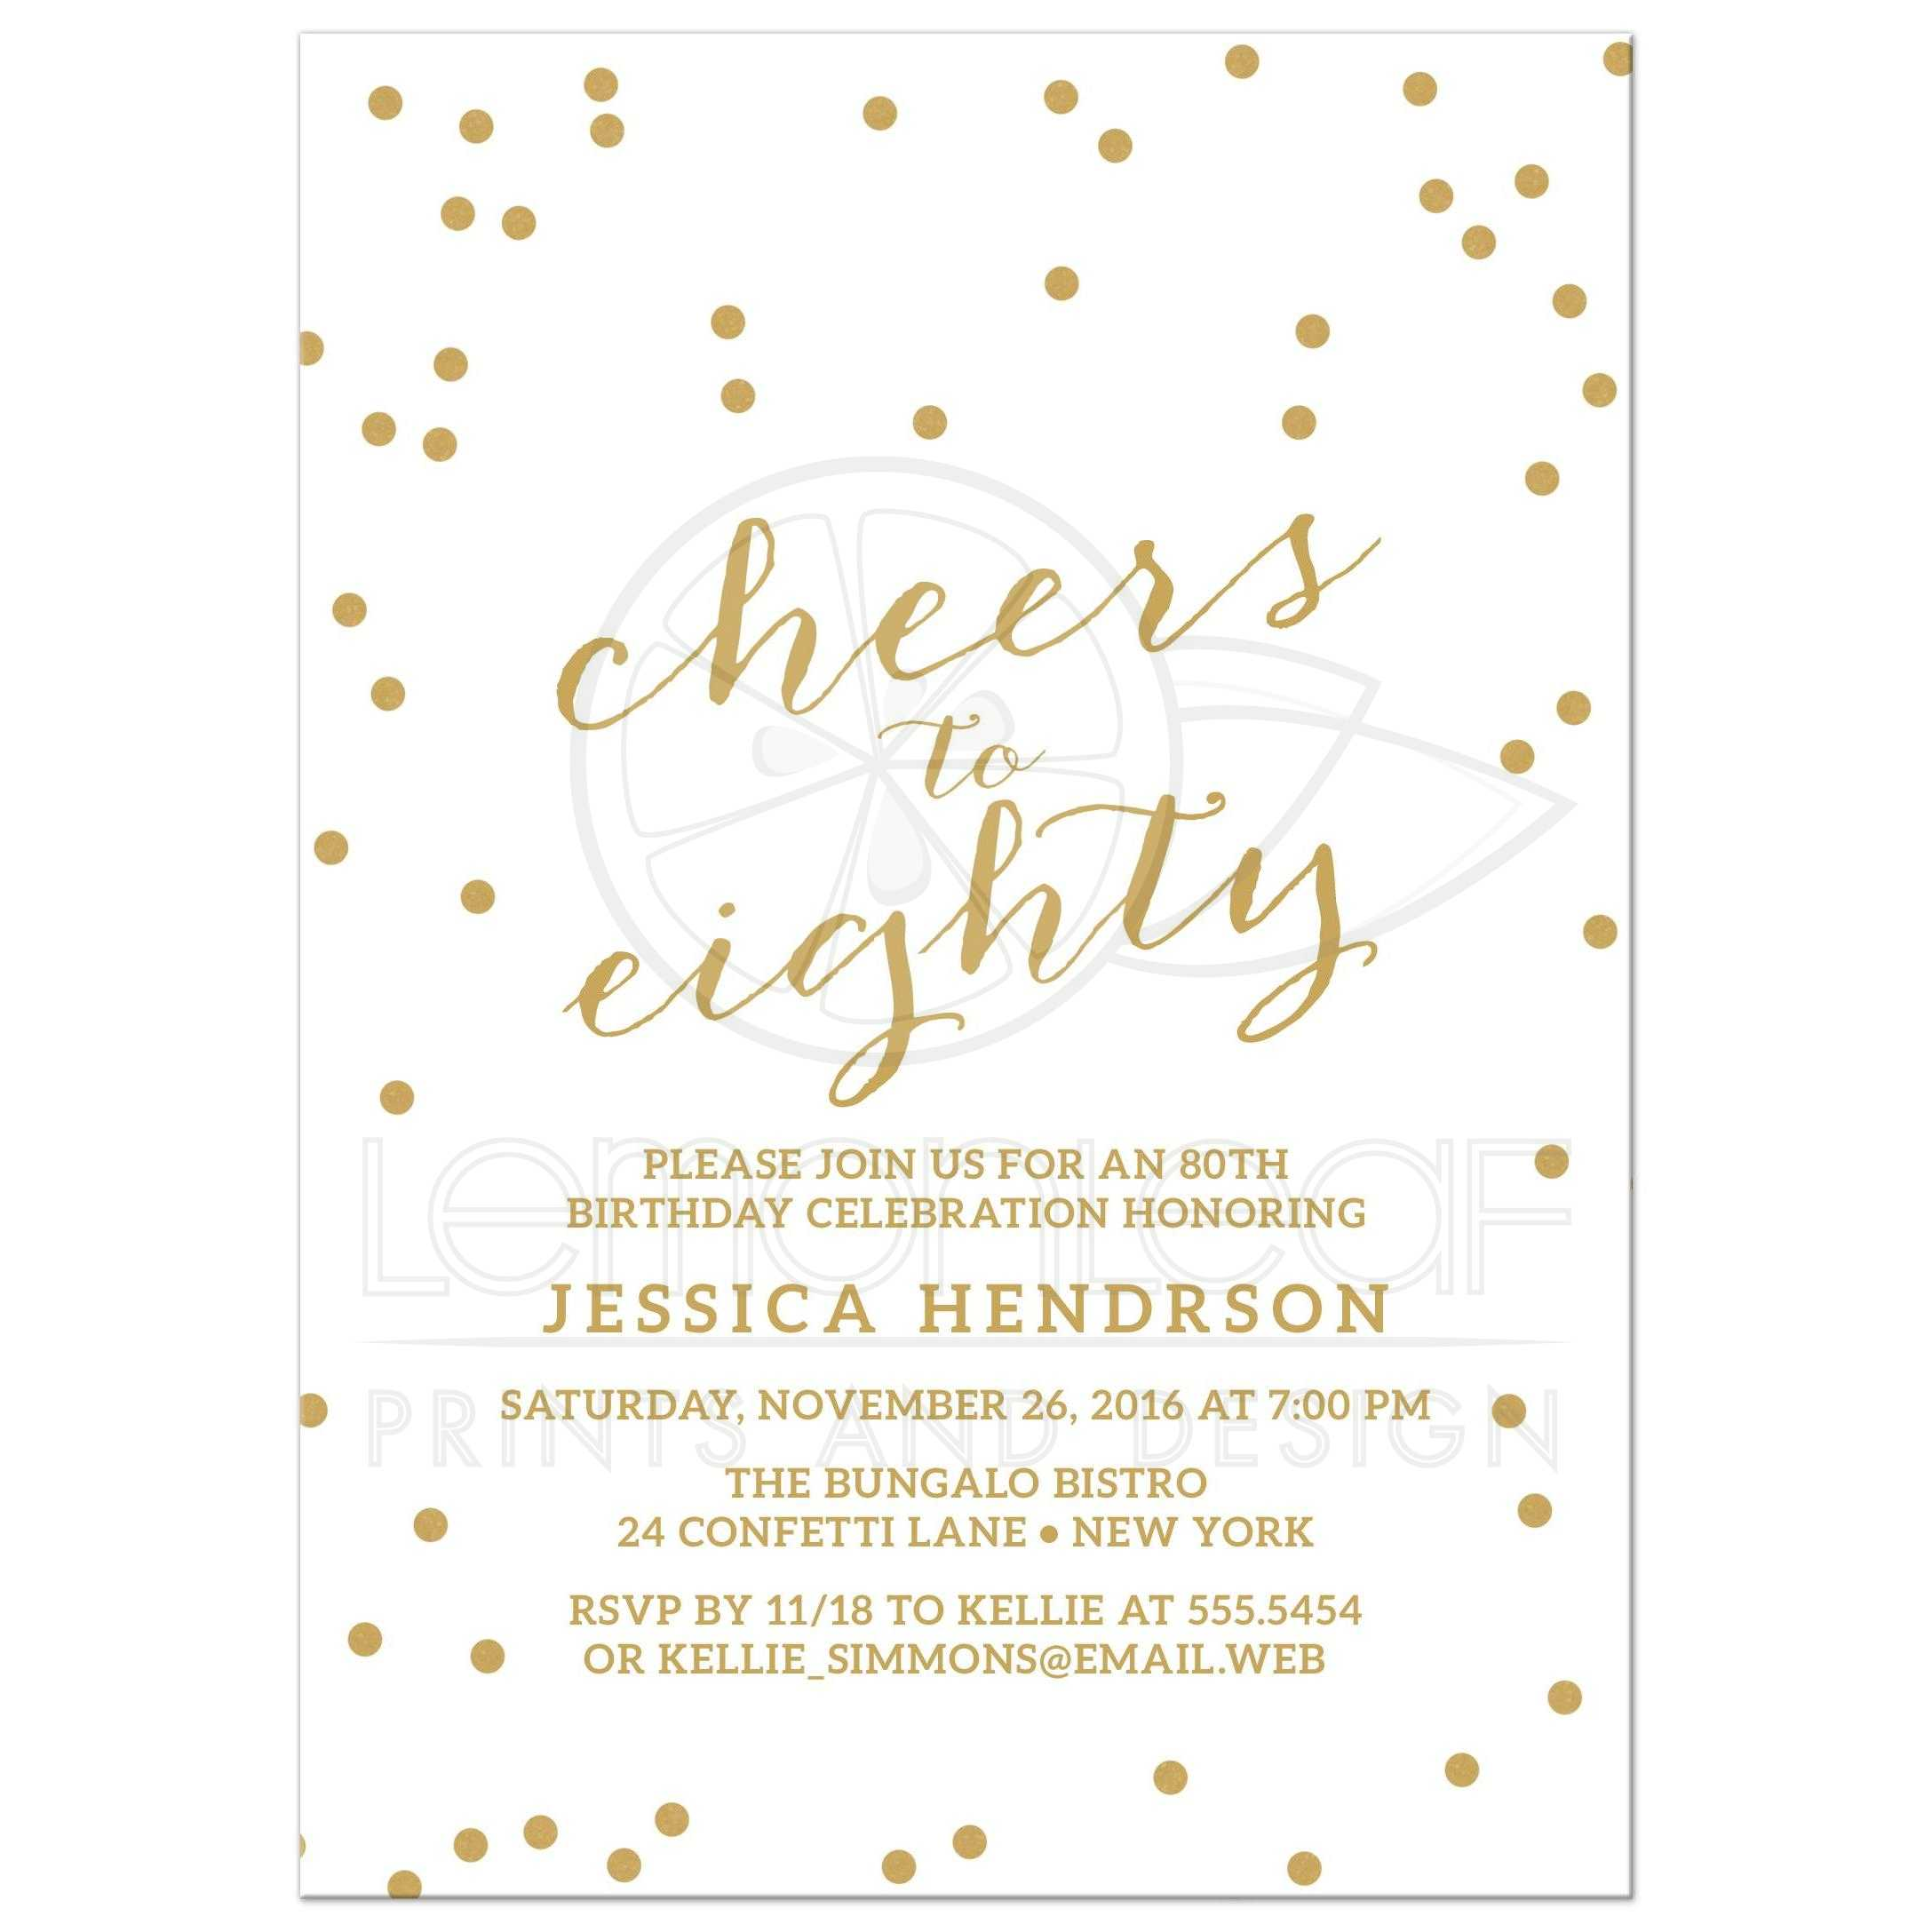 80th Birthday Party Invitations - Gold Confetti Cheers to Eighty